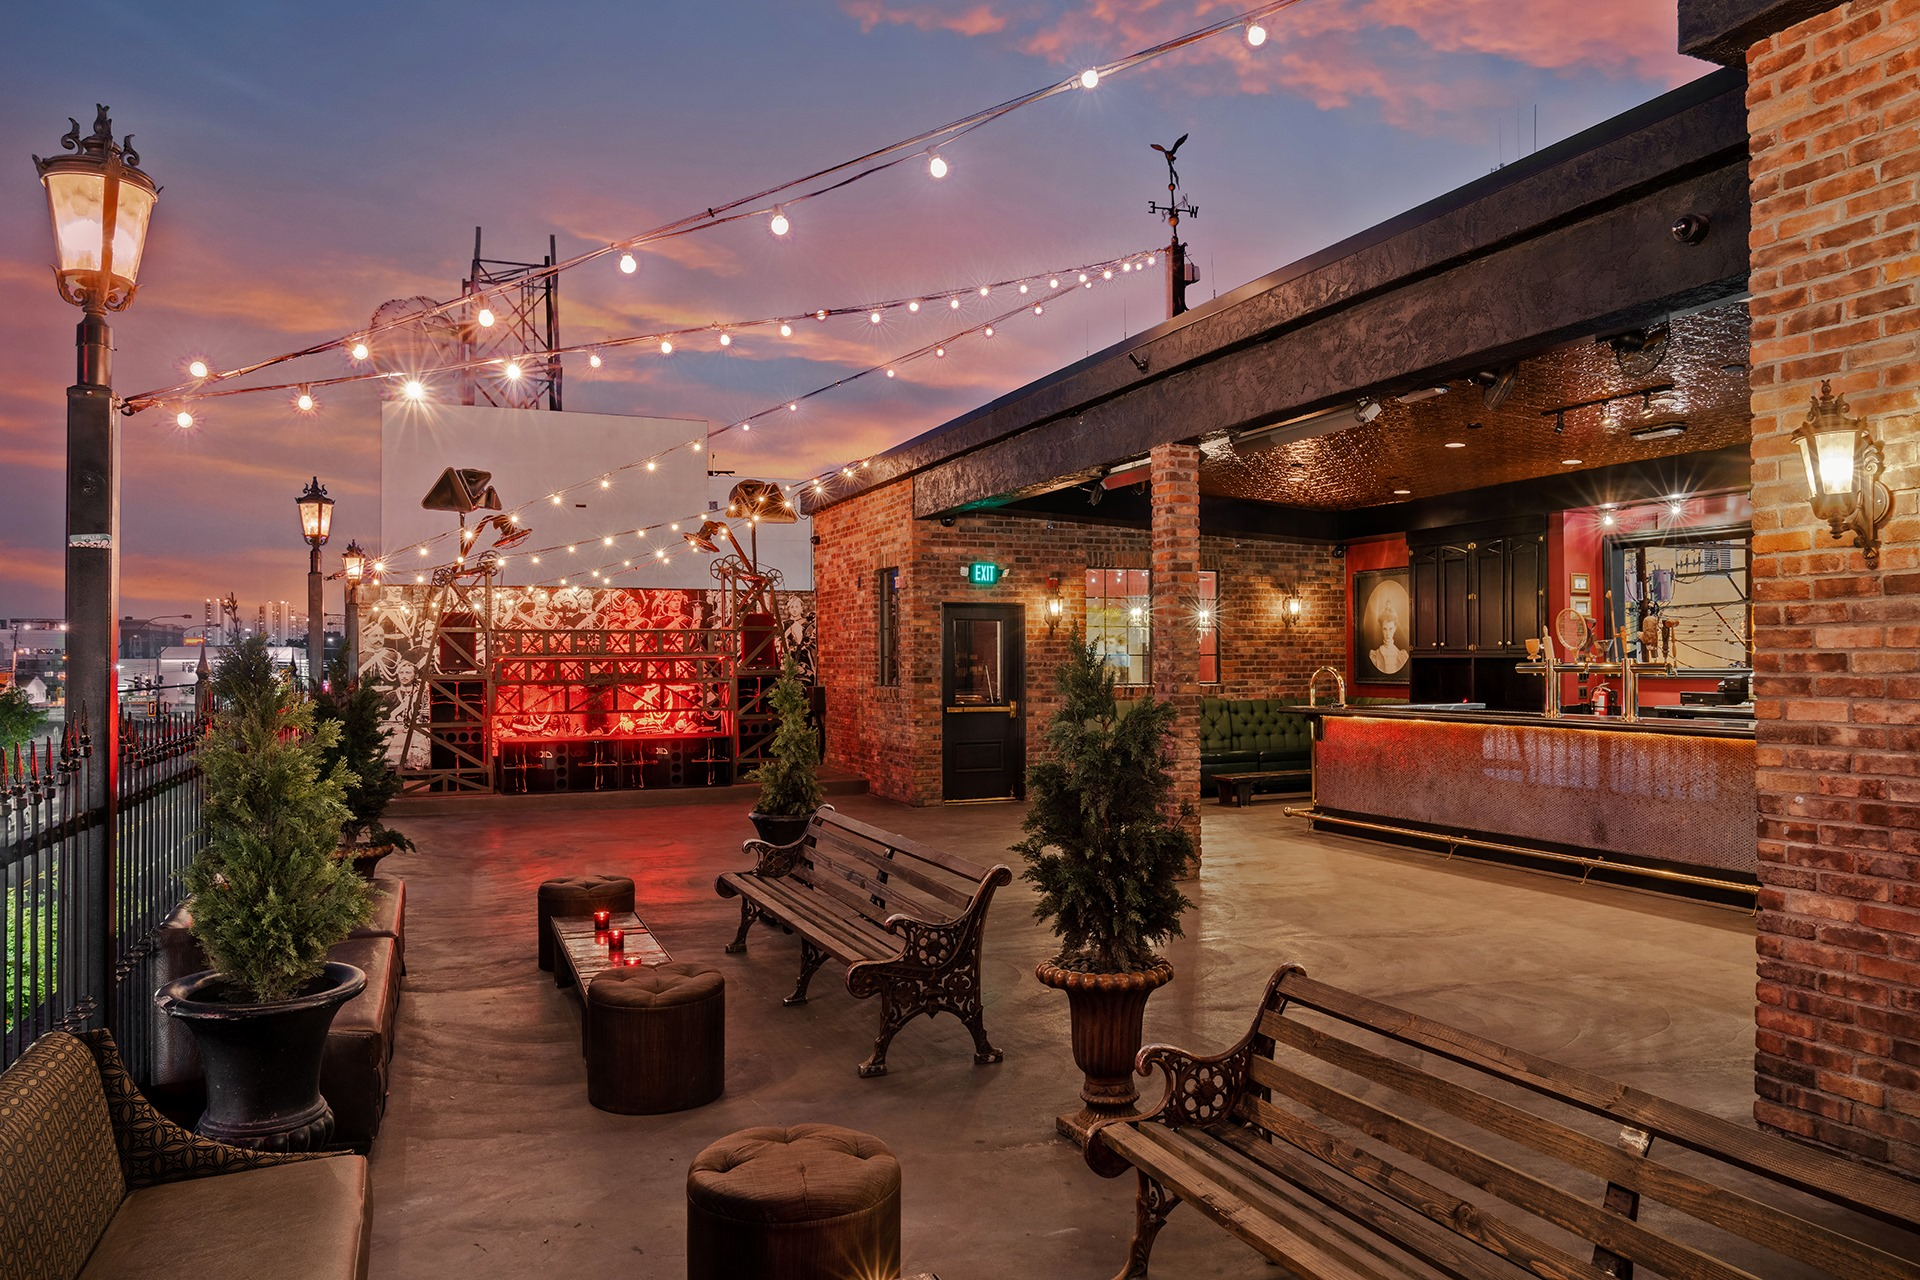 A patio with a covered bar, string lights, and park benches